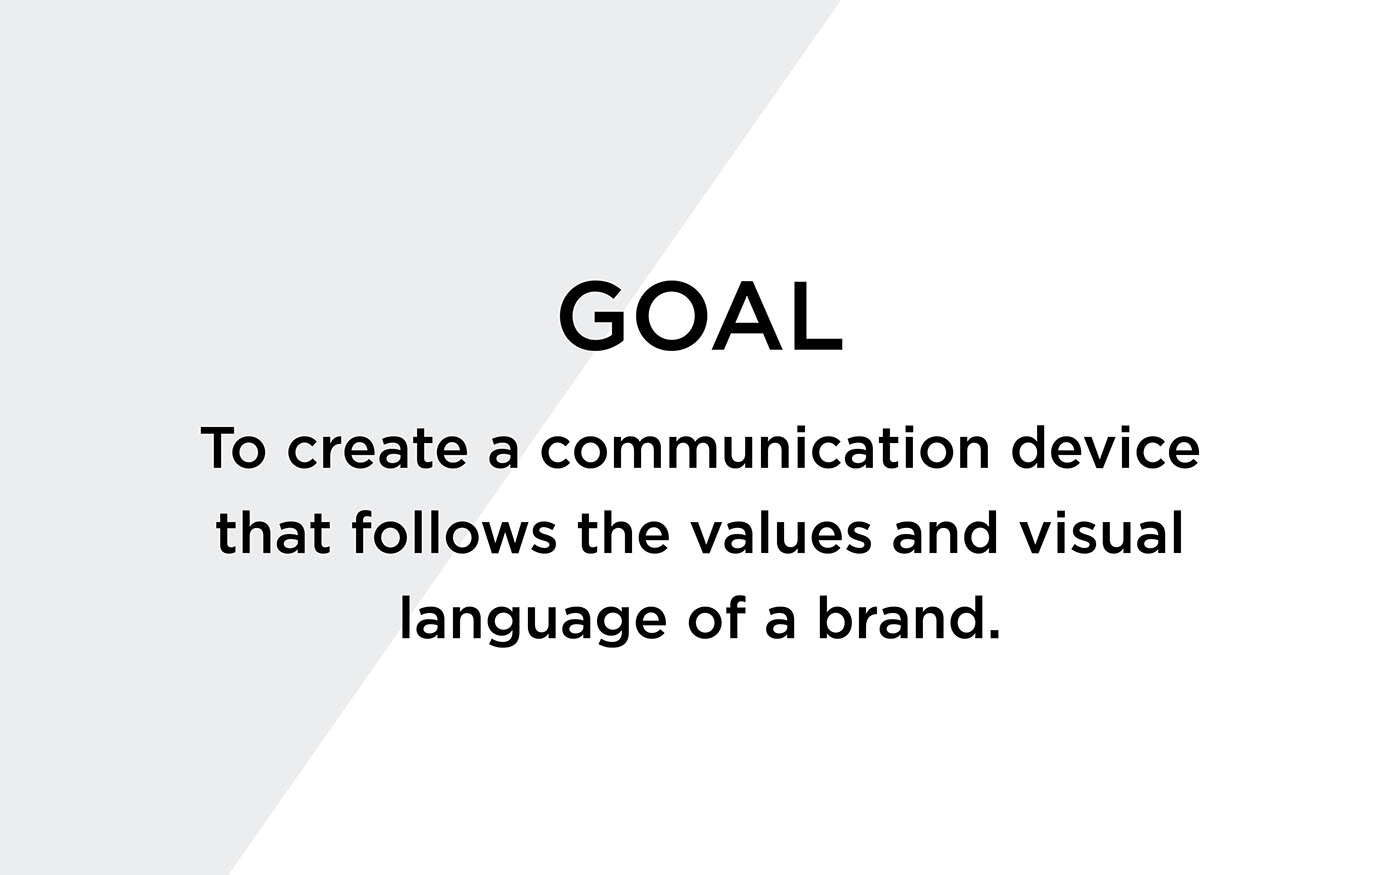 Volvo phone industrial design  product cell phone communication device brand focus